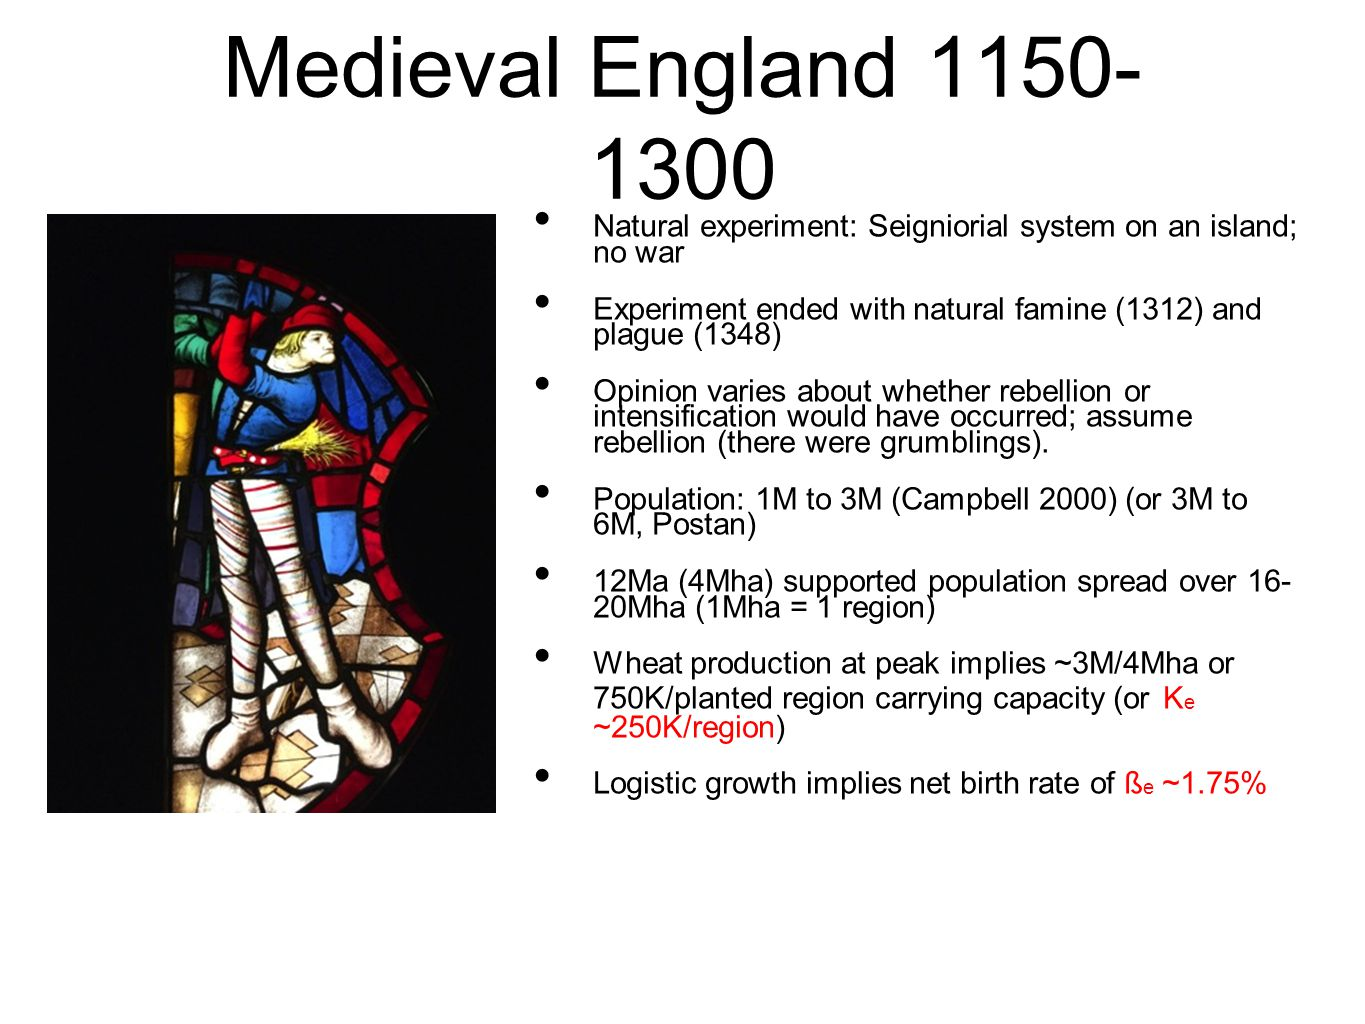 Medieval England 1150- 1300 Natural experiment: Seigniorial system on an island; no war Experiment ended with natural famine (1312) and plague (1348)